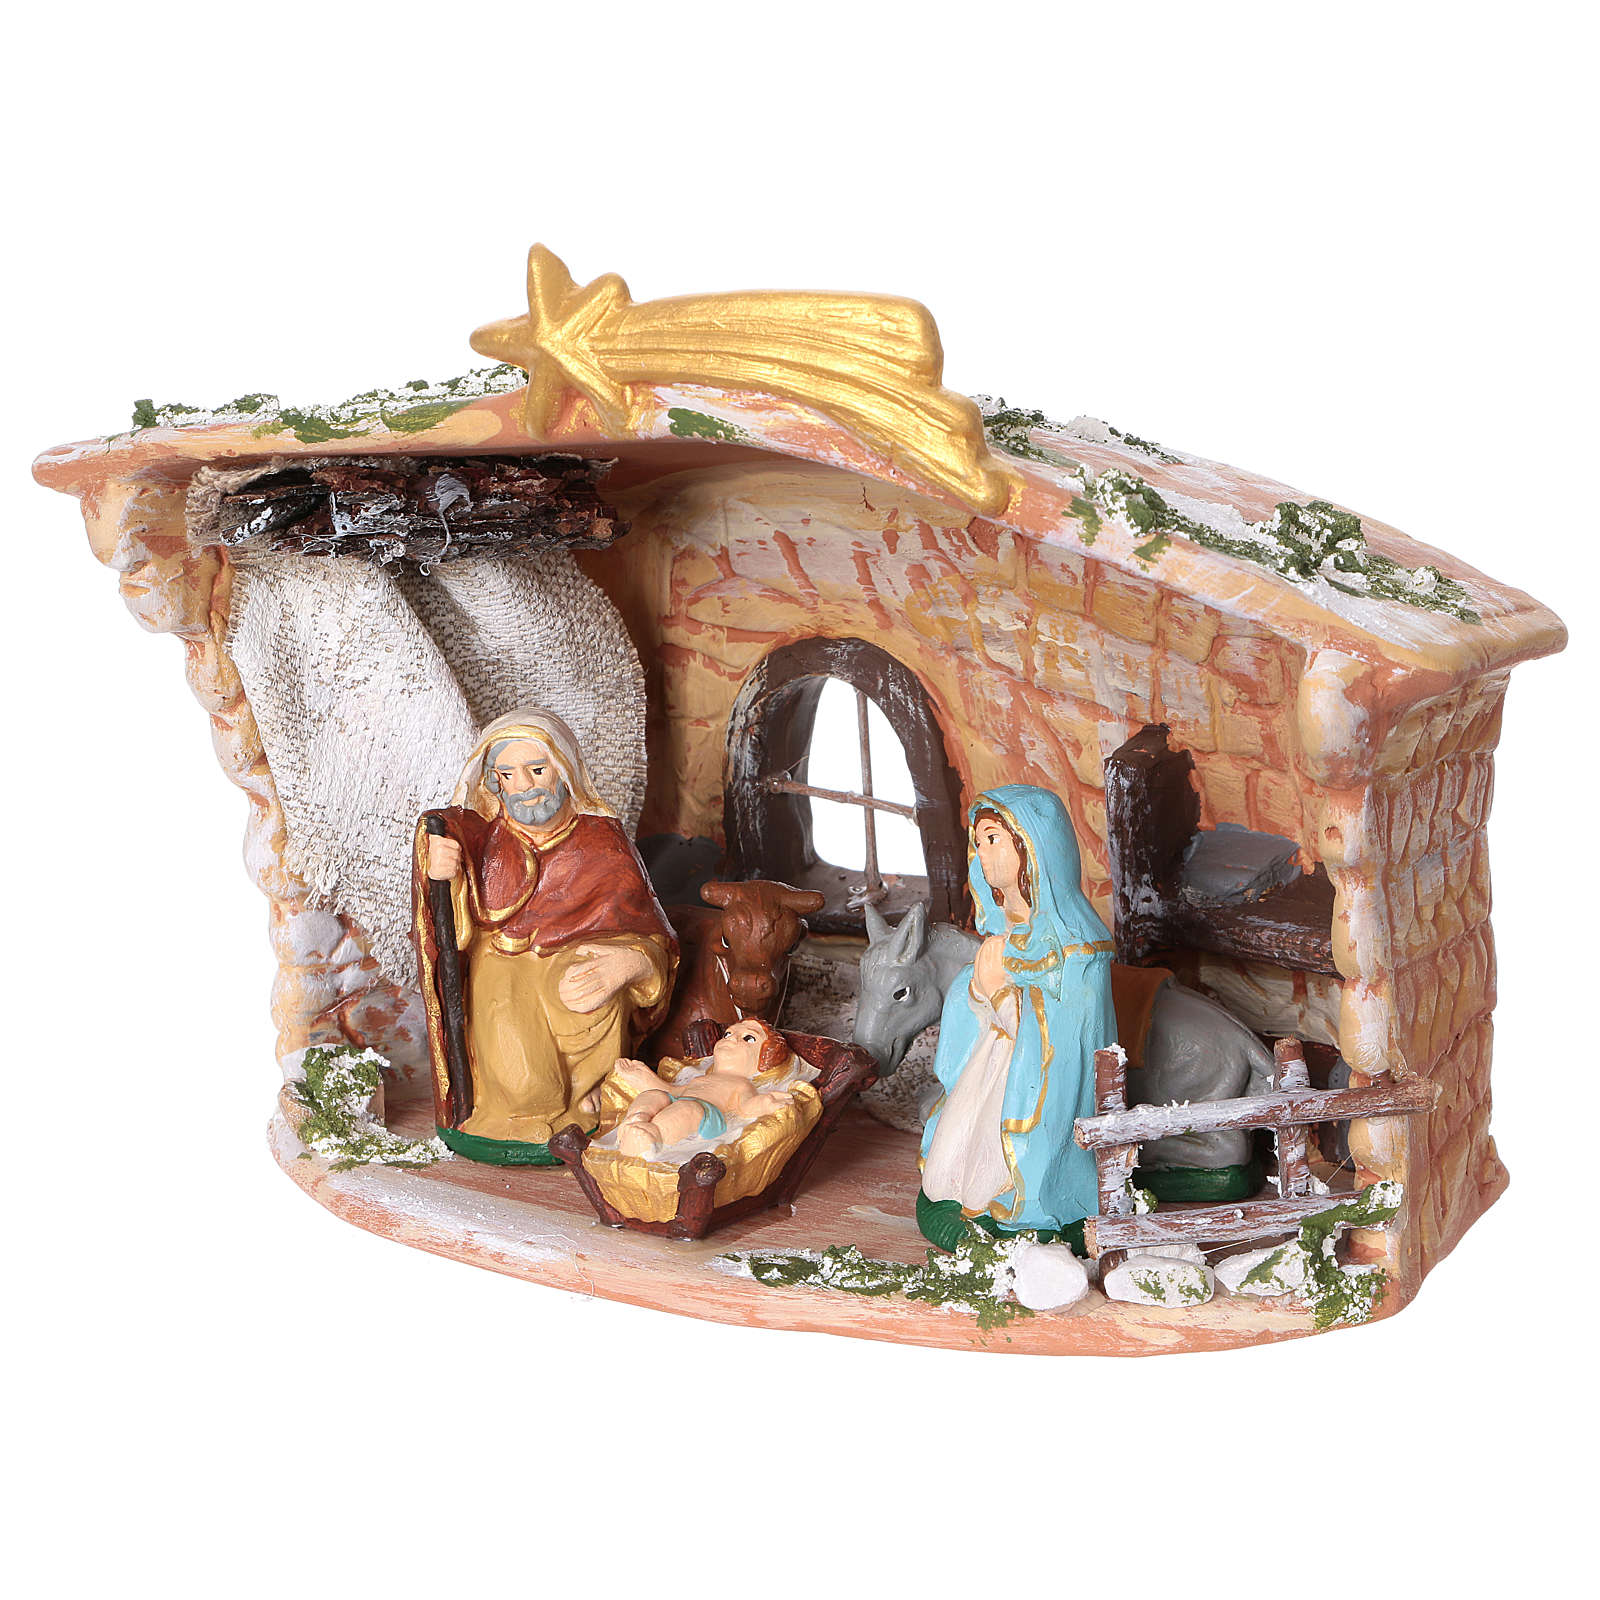 Terracotta hut painted with Nativity scene 8 cm 20x20x15 cm 4